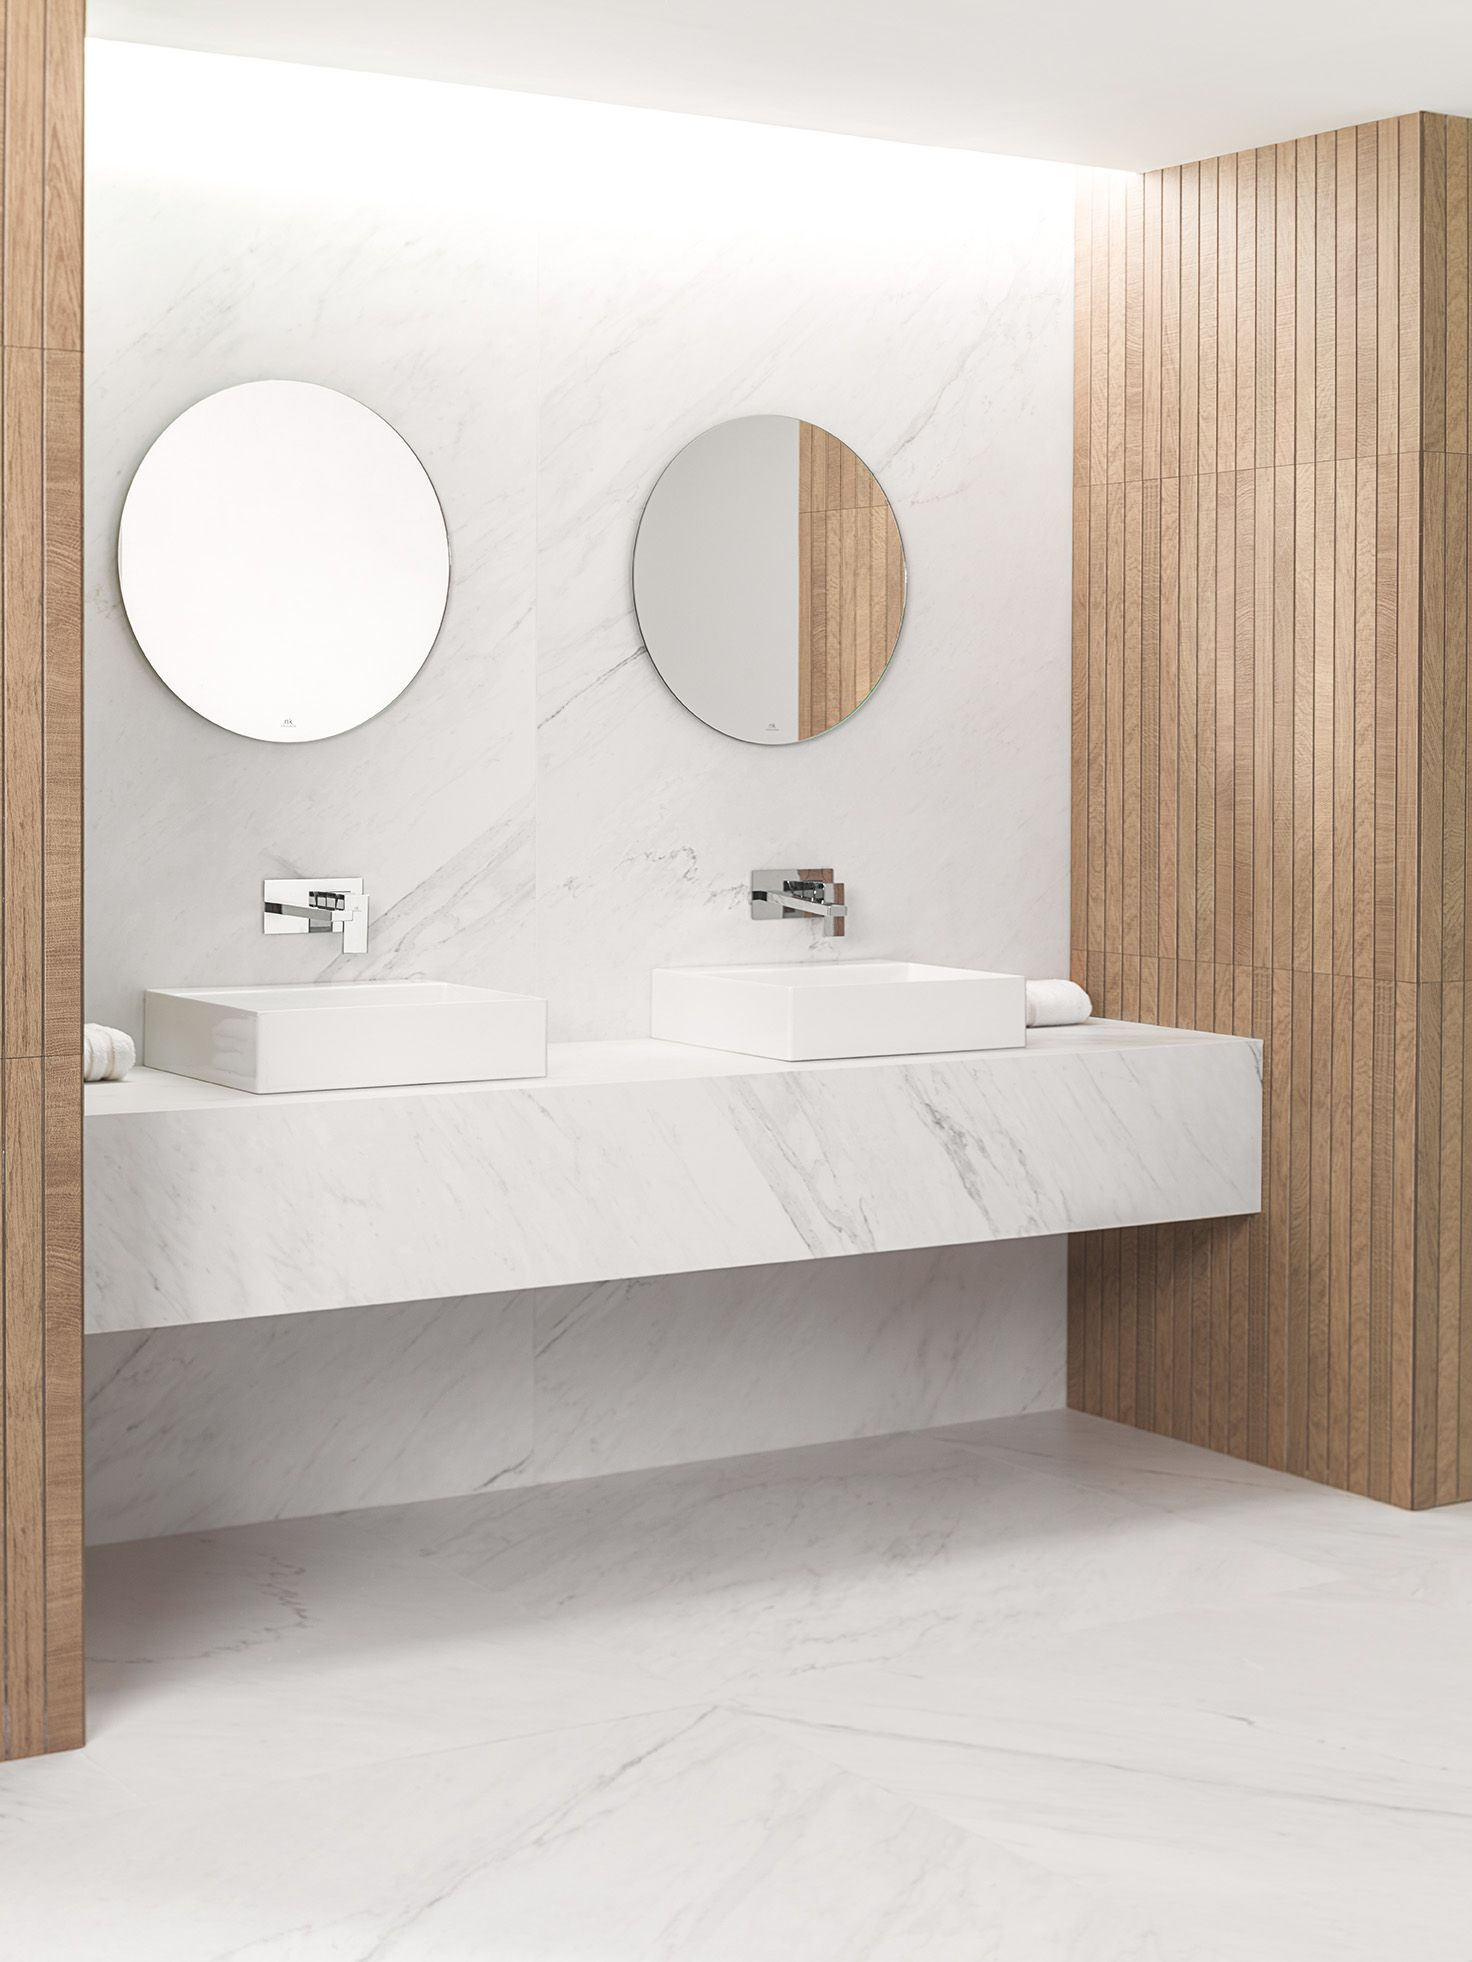 XLIGHT Premium Lush White URBATEK Noken PORCELANOSA Gres - Porcelanosa bathroom accessories